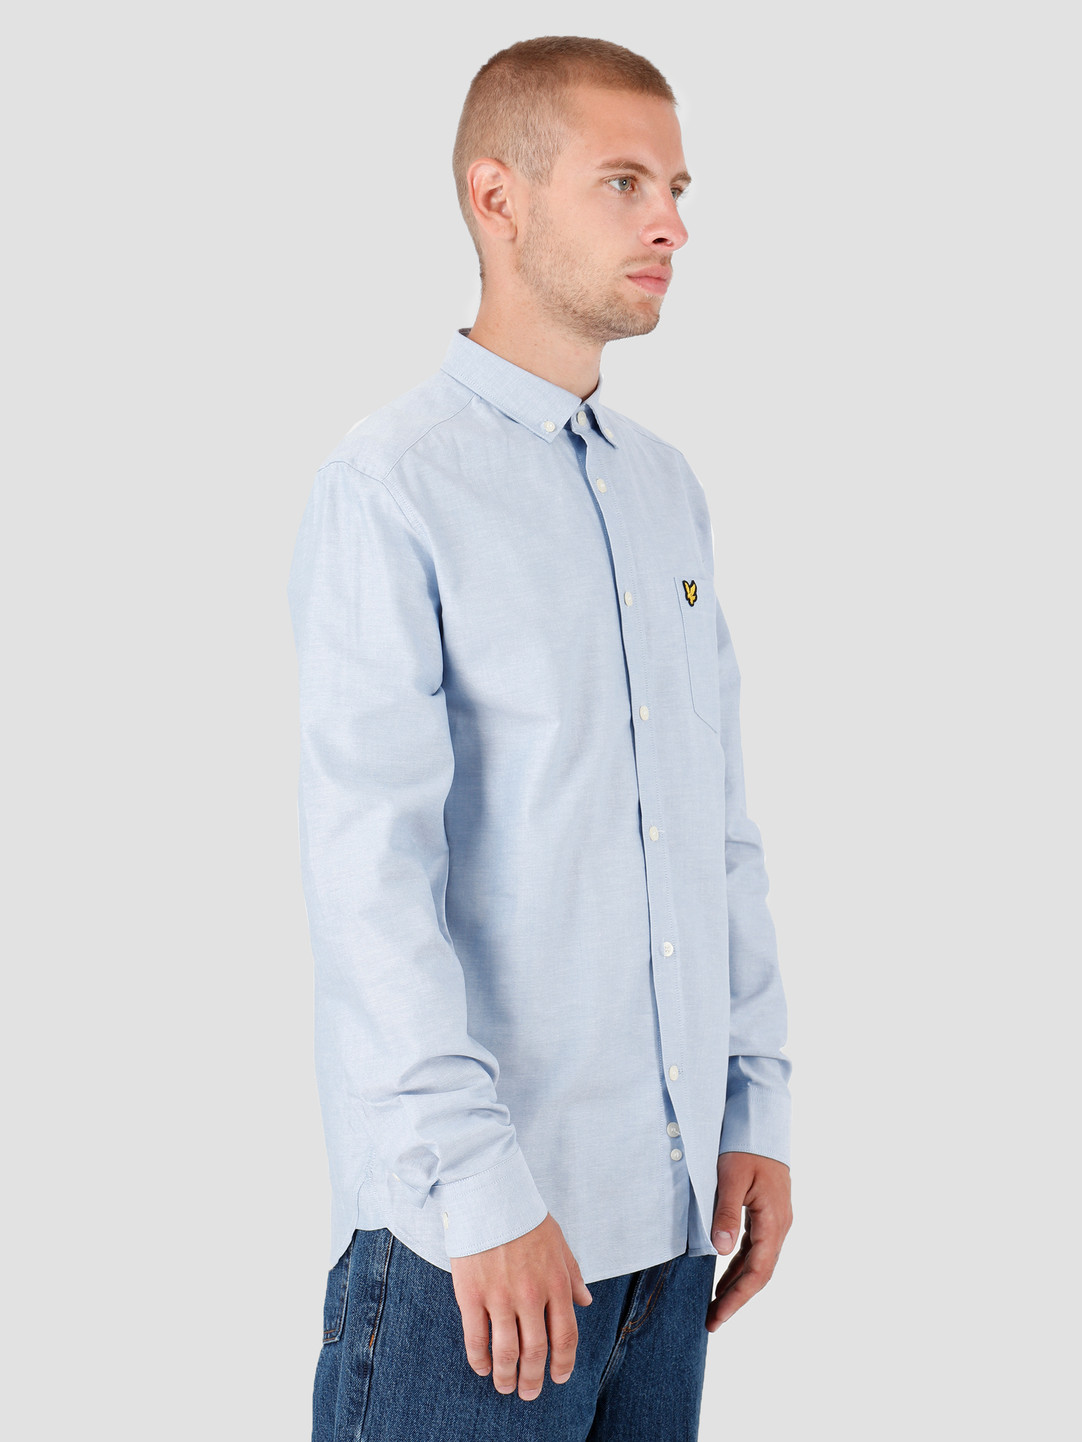 Lyle and Scott Lyle and Scott Oxford Shirt X41 Riviera LW614VTR